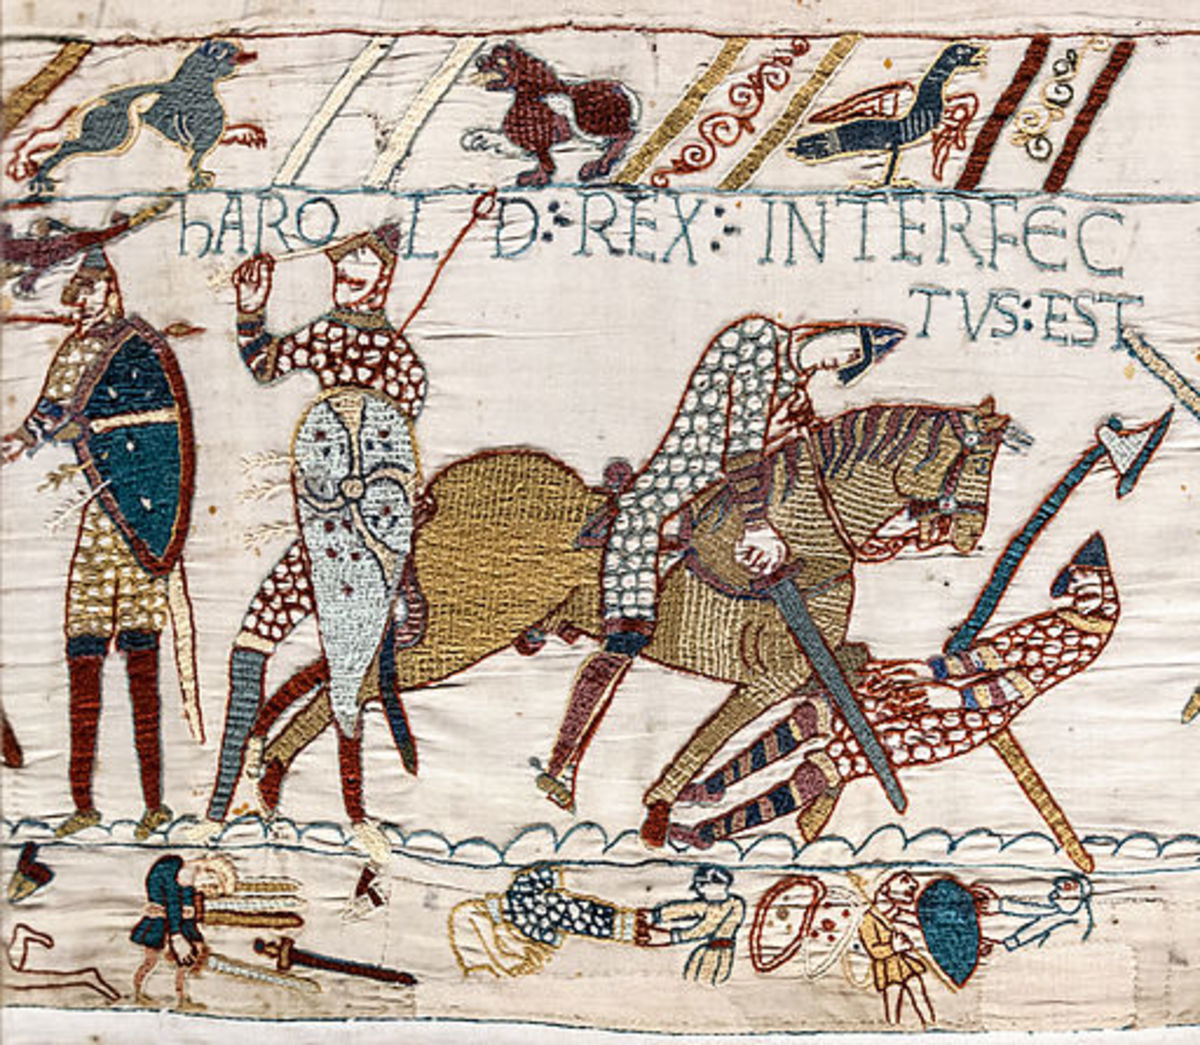 The Bayeux Tapestry. Date: 1070's. The Death of King Harold at the Battle of Hastings.